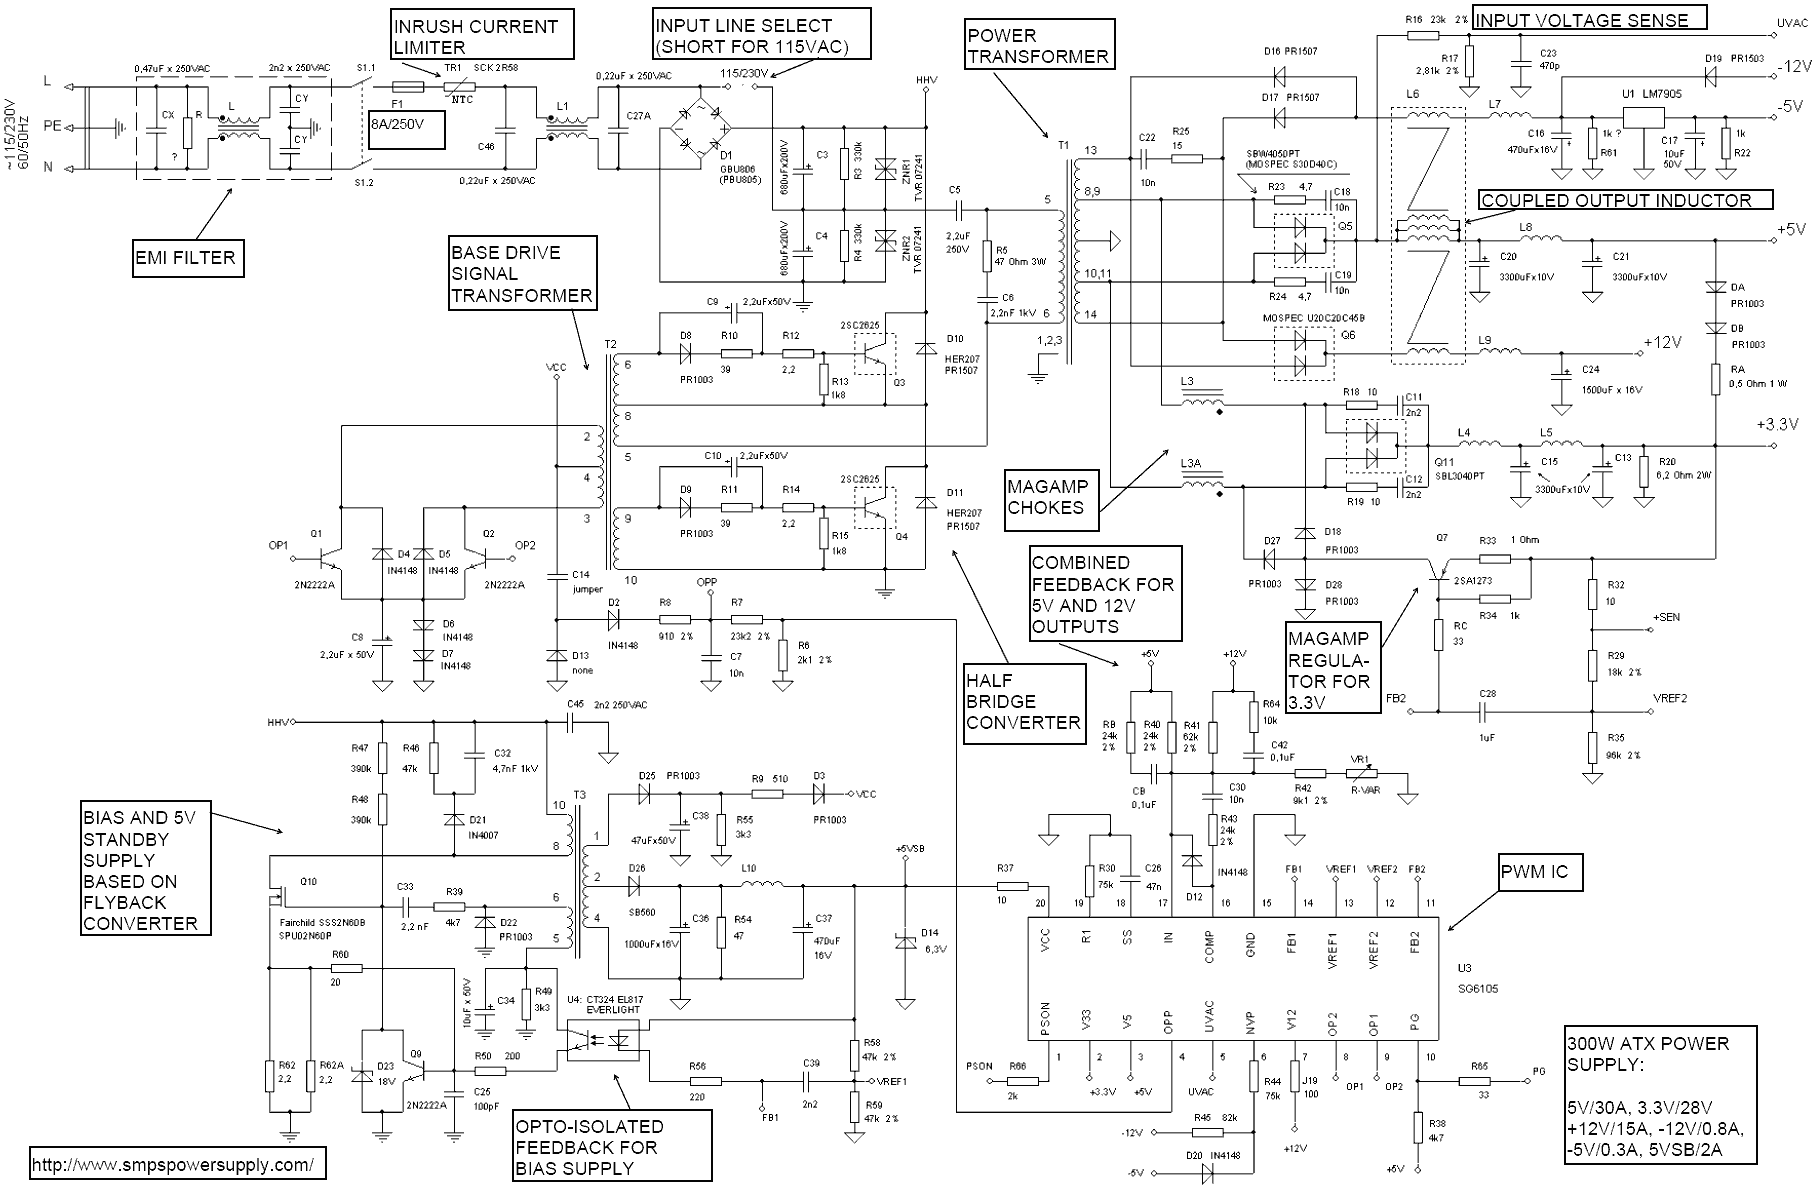 Symbols Ravishing And Atx Computer Supplies Schematics Circuit Adjustable Symmetrical Power Supply By Lm317 Lm337 Diagram Satxd Schematic Of A